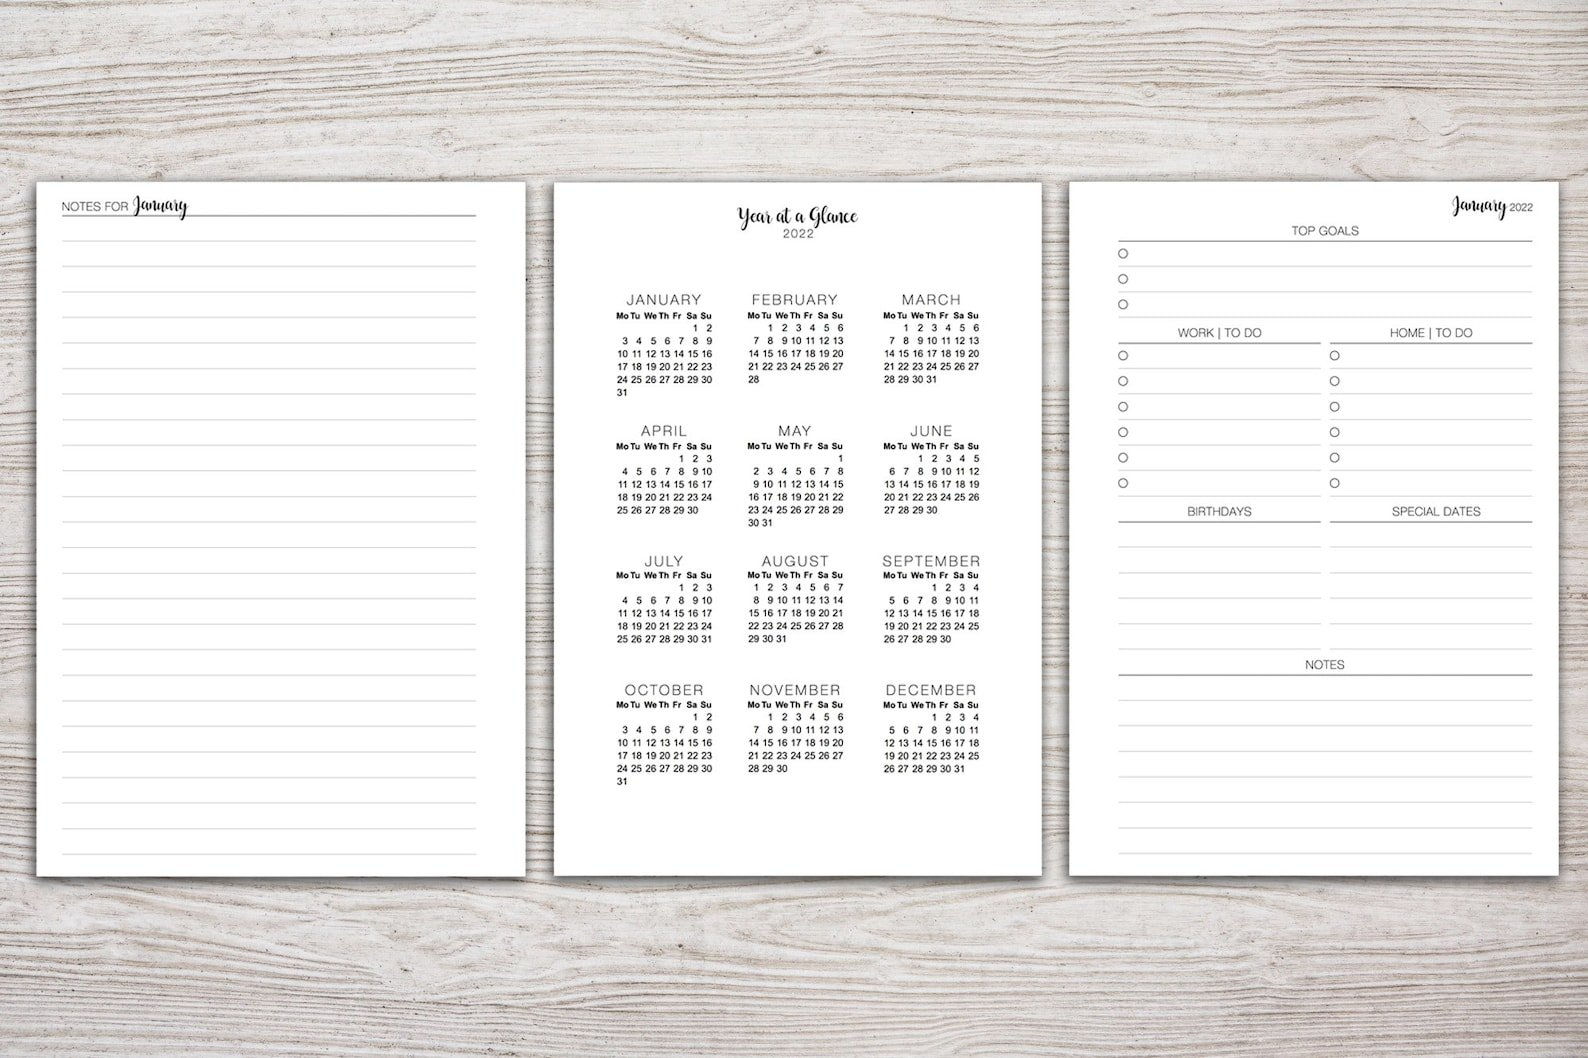 A5 Planner Printable 2022 Monthly Planner Filofax A5 | Etsy for 2022 Planner Printable A5 Diy